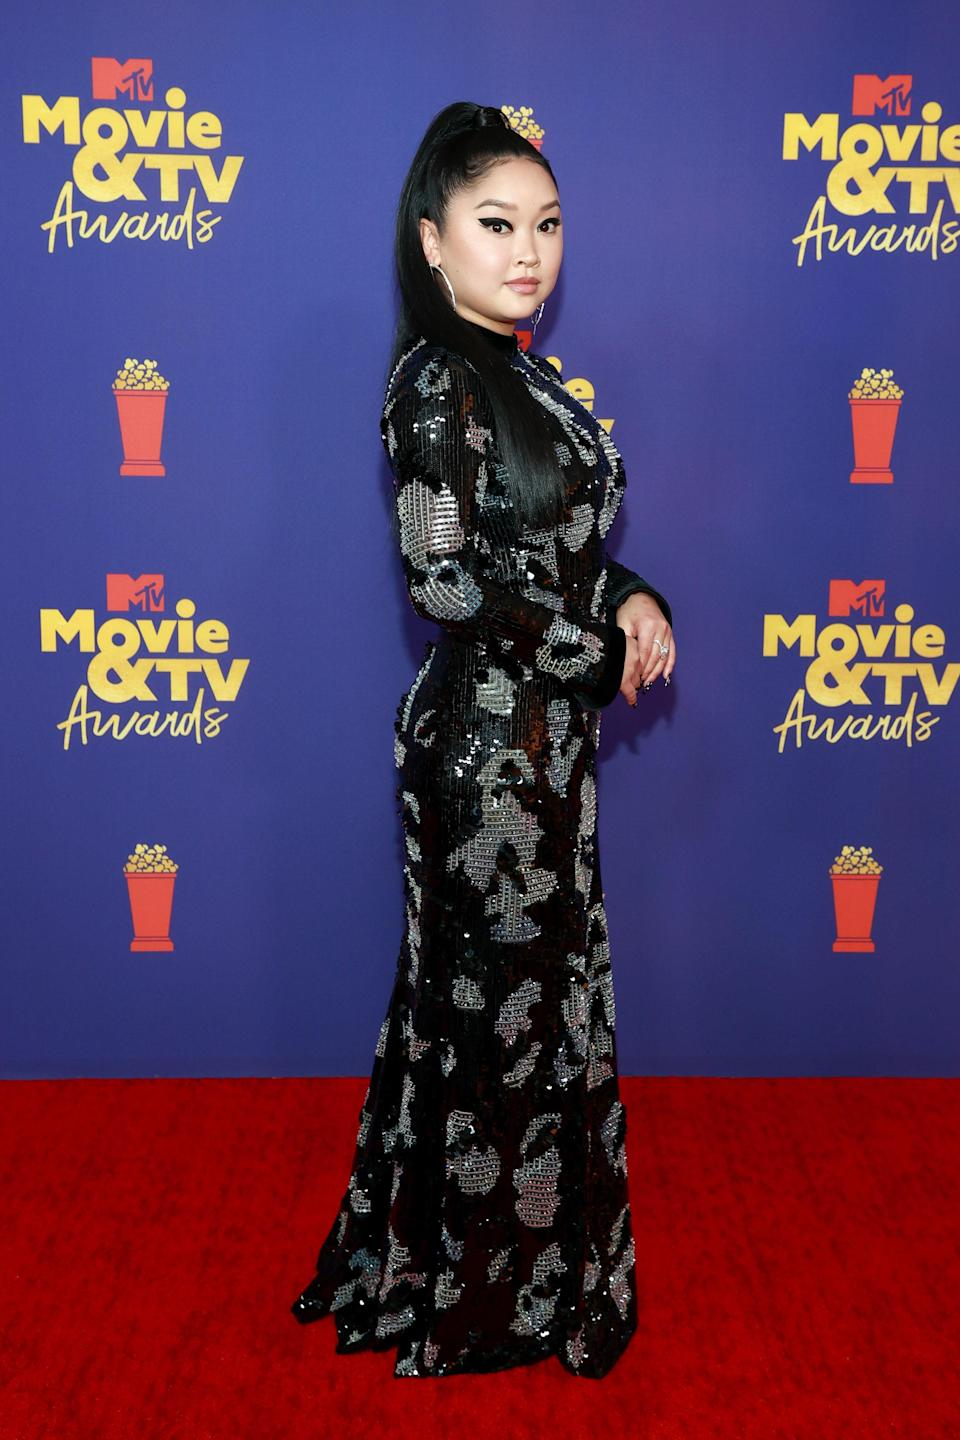 Lana Condor was the evening's lady <em>in noir</em>. Her killer winged liner and slick half-pony gave a sleek backdrop to her show-stopping Giorgio Armani gown. The all-black look glistened with three-dimensional sparkles and an abstract silver print. Styled by Tara Swennen, Lana's floor-length dress 'fit her perfectly with a high neck and cinched waist.